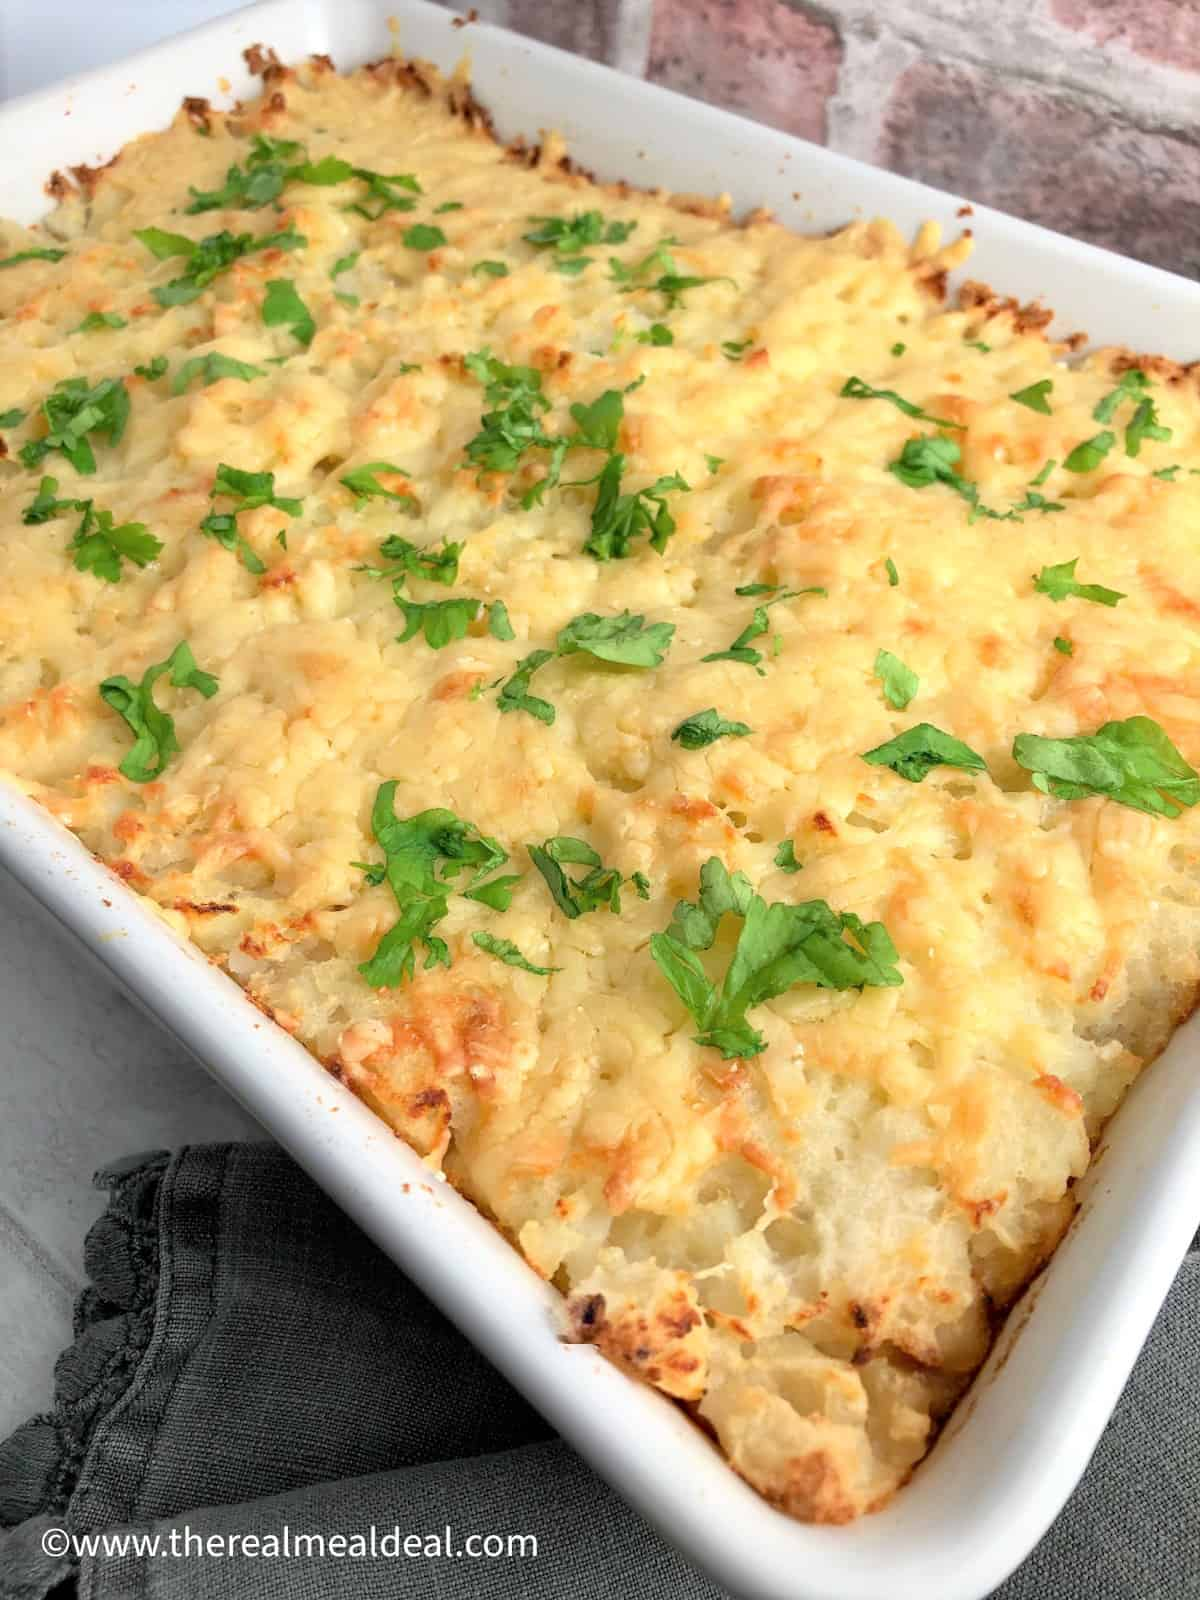 vegetarian cottage pie cooked in dish topped with fresh parsley leaves